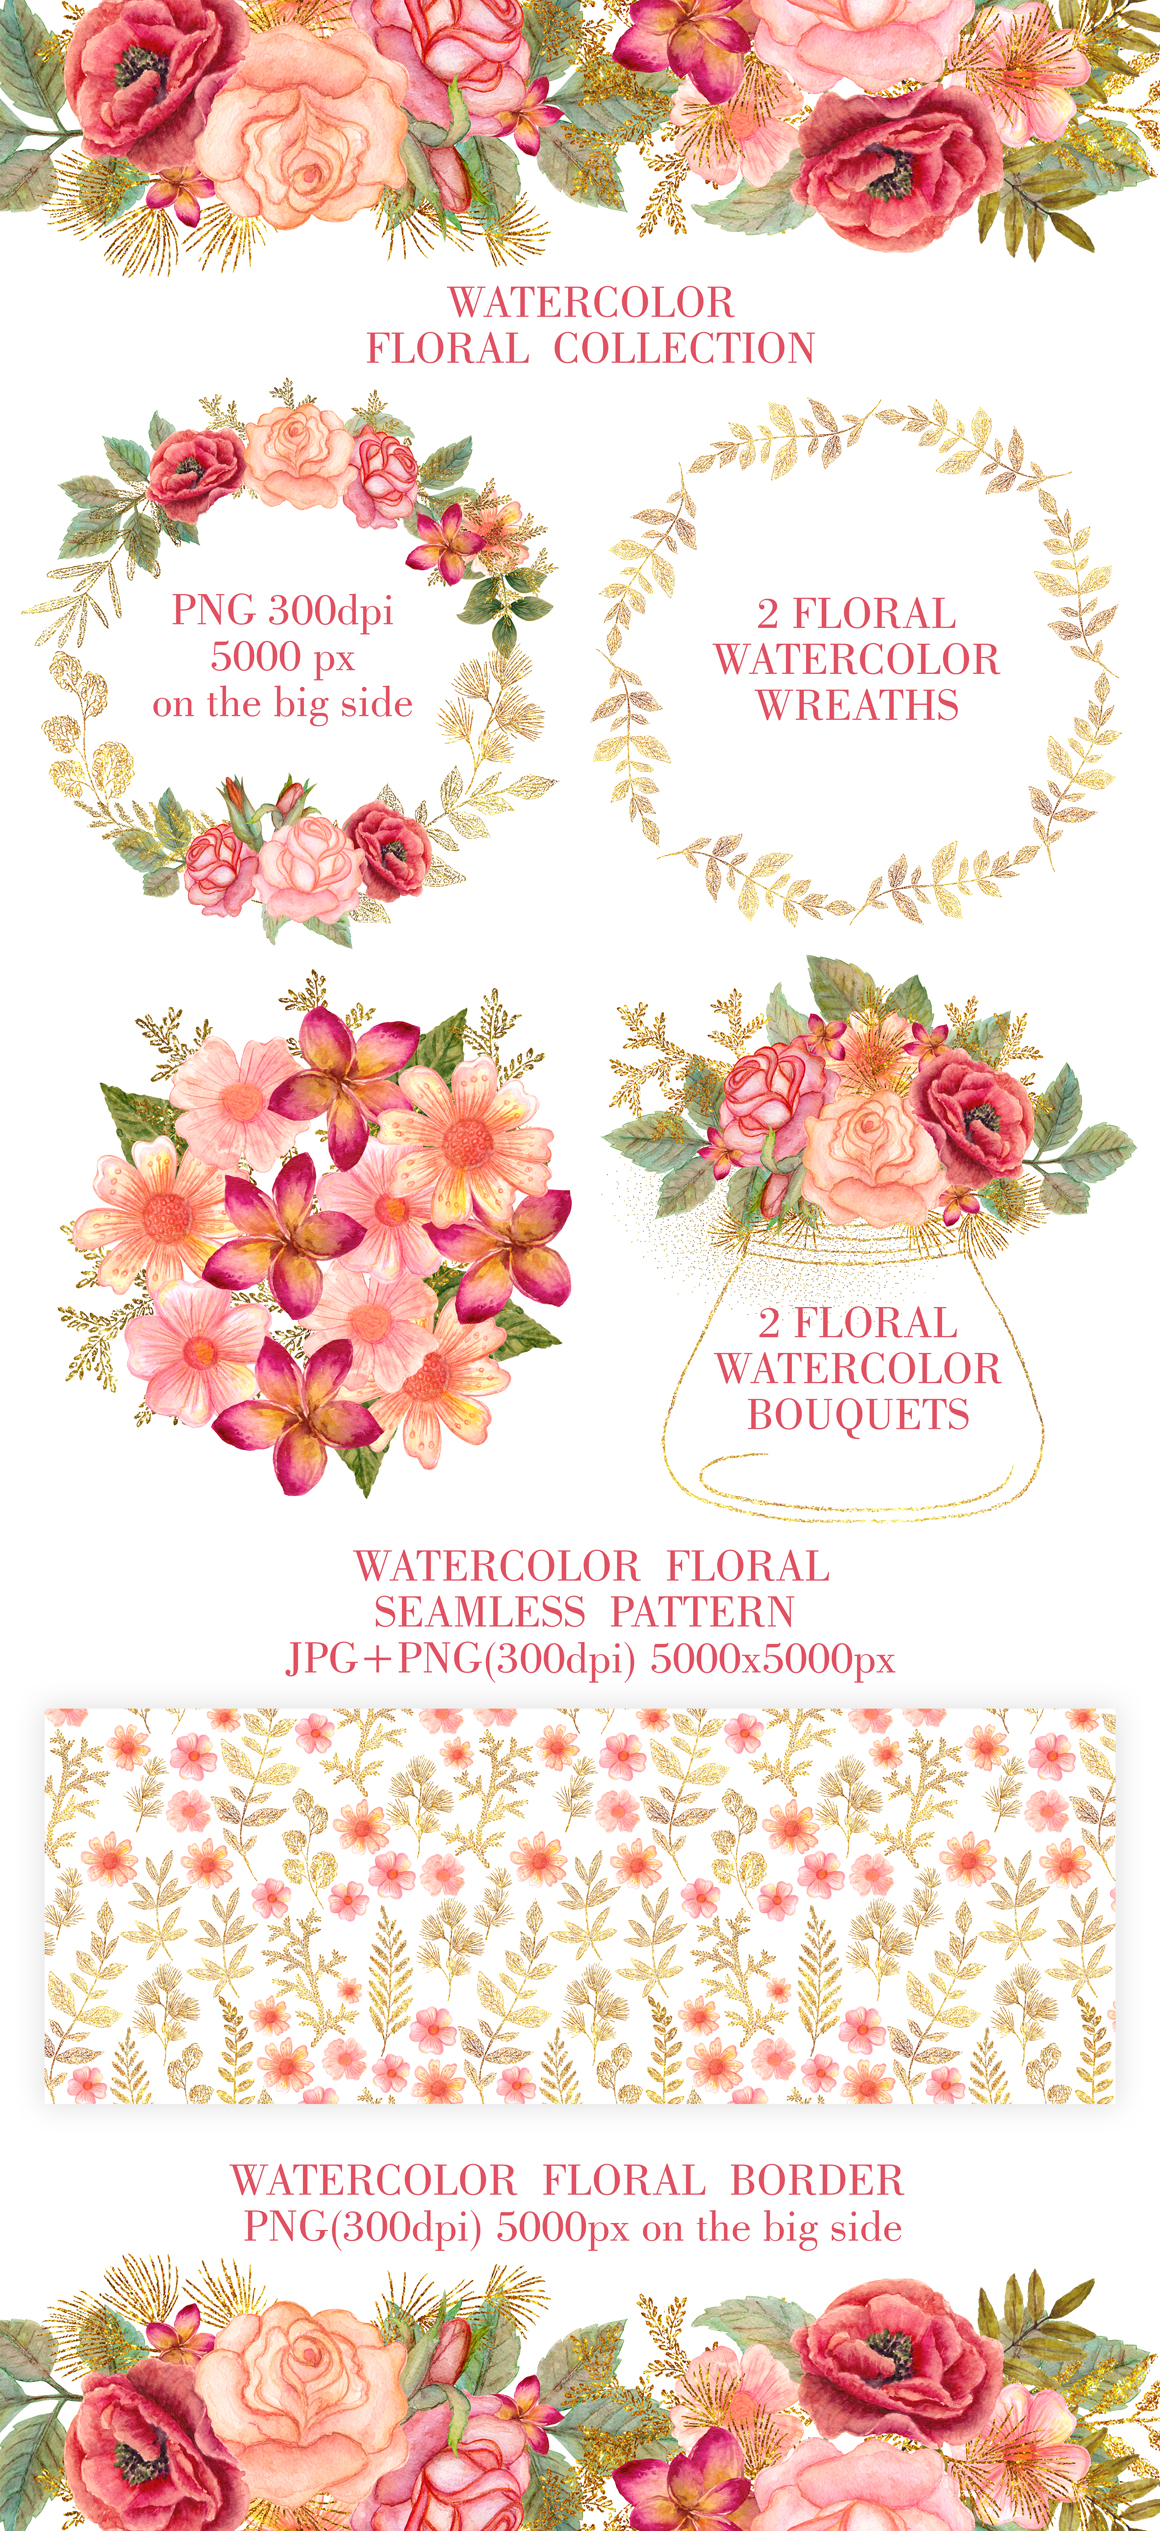 Watercolor floral collection example image 2